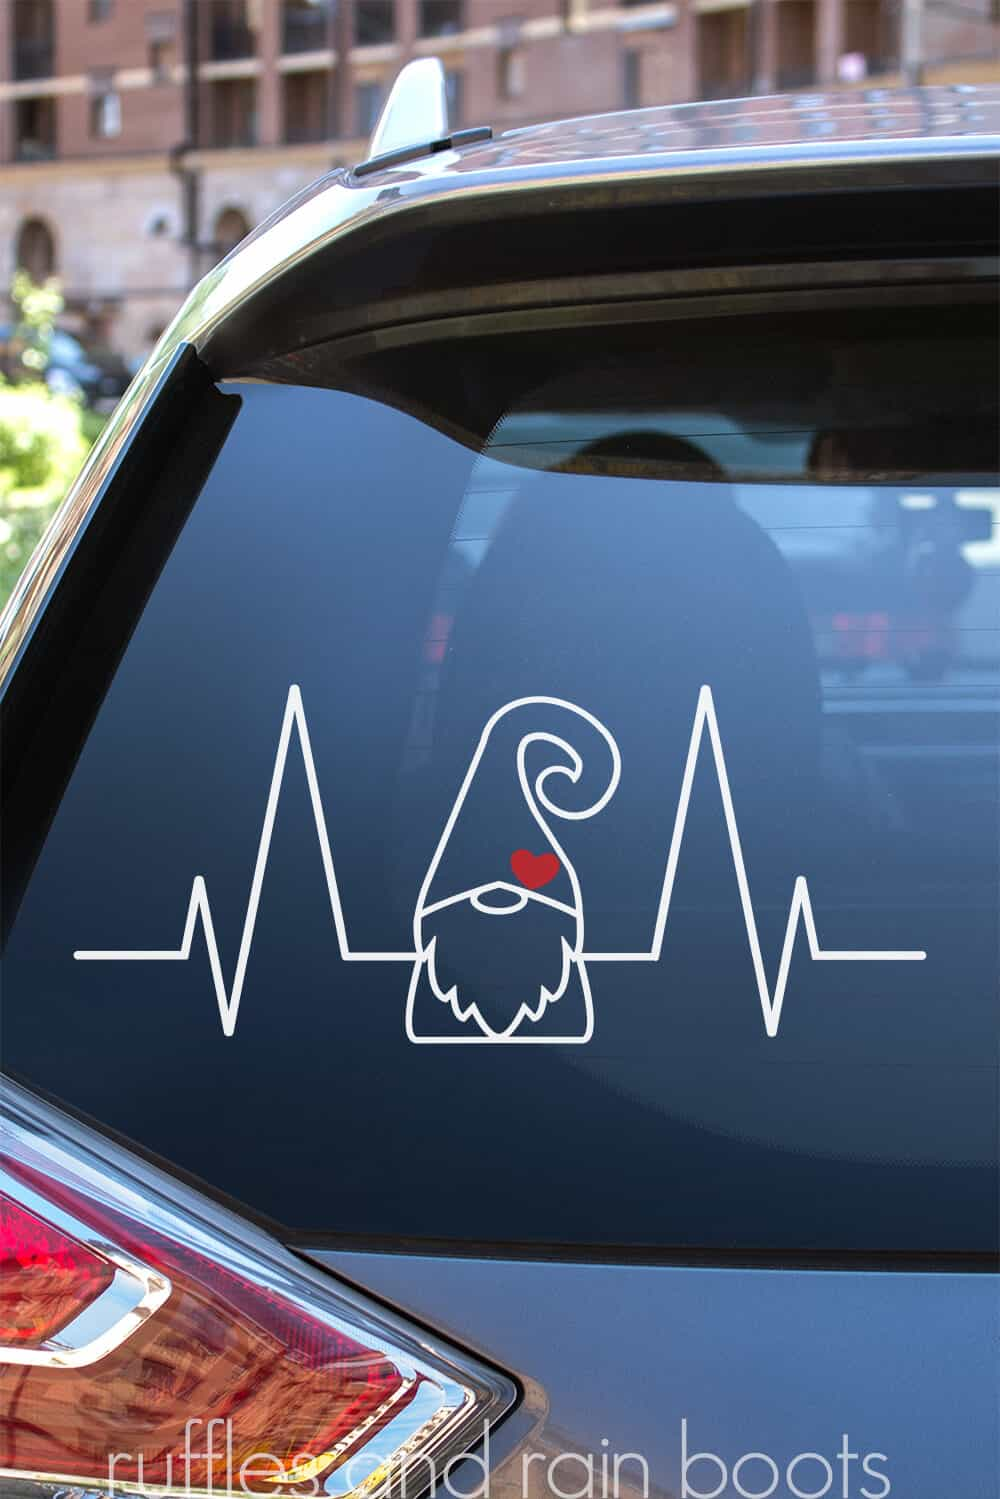 vertical image of the back of a car window with a white gnome heartbeat design